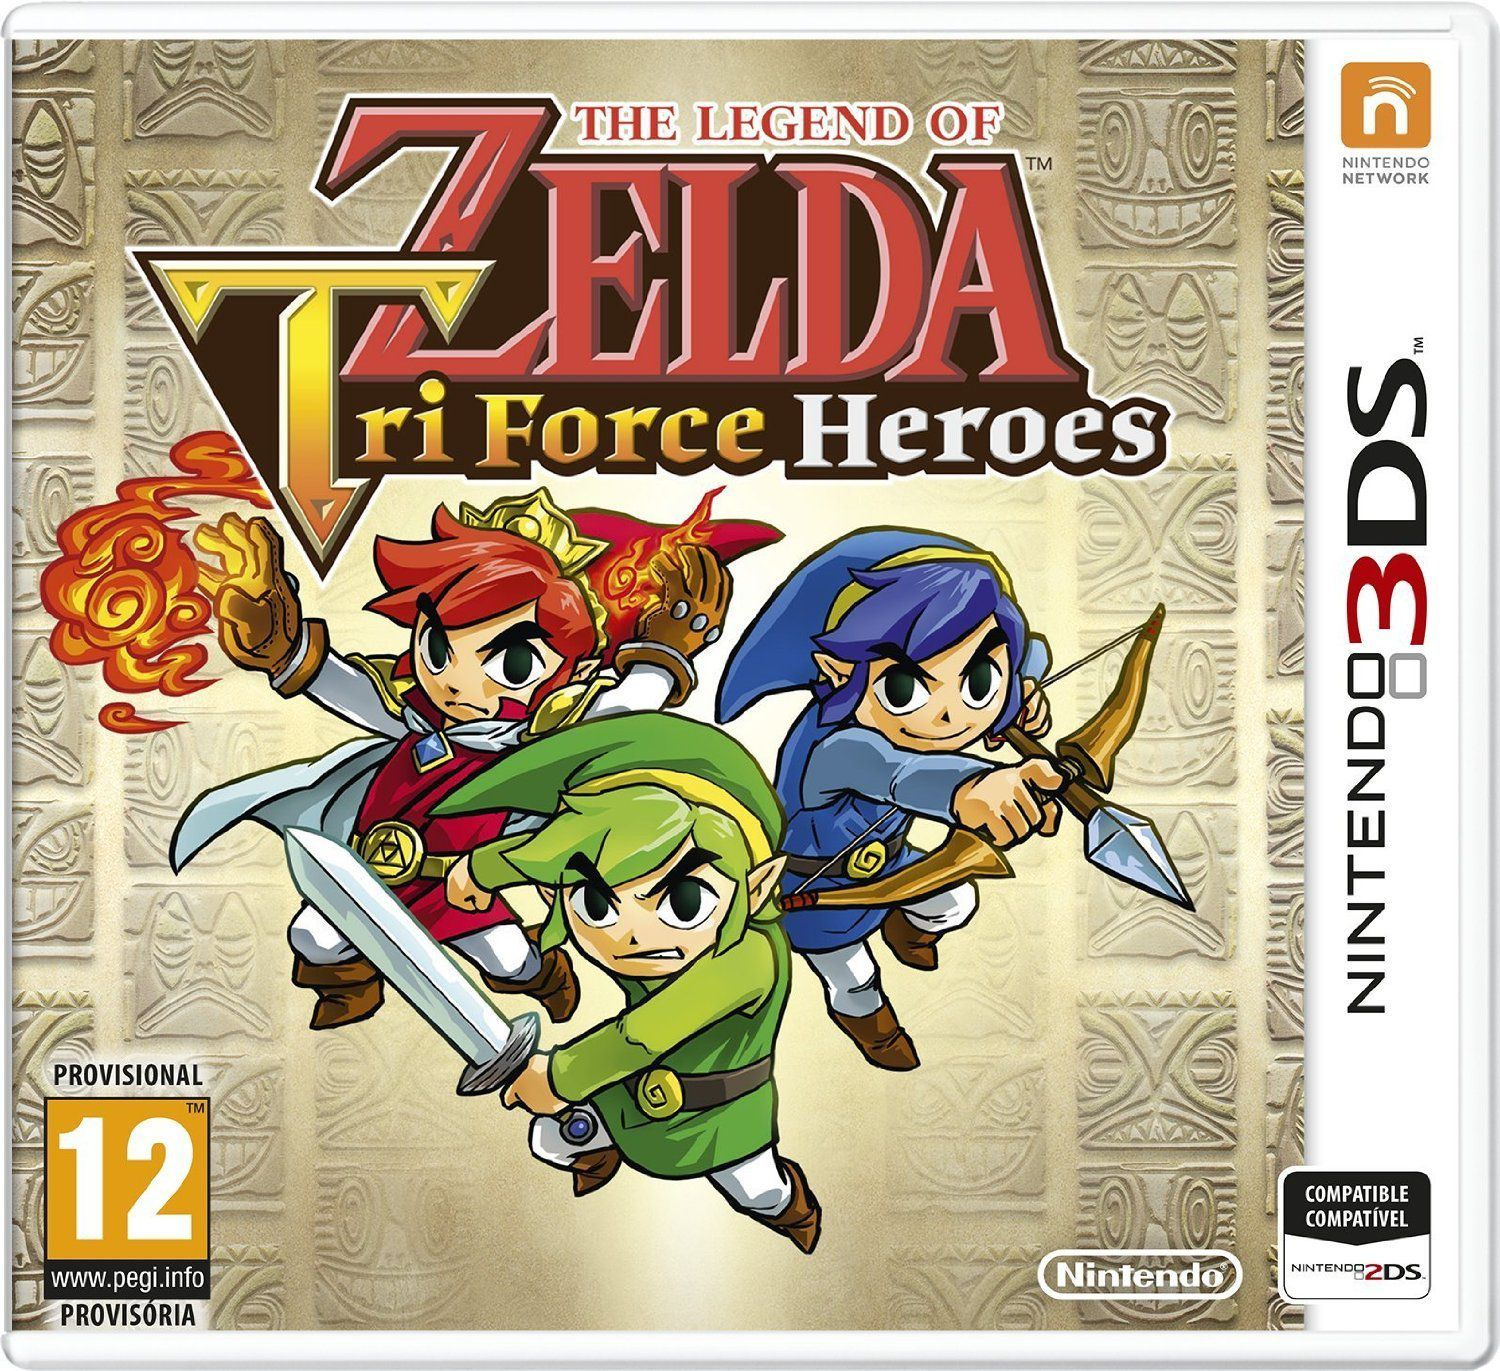 Ver The Legend of Zelda Tri Force Heroes 3Ds